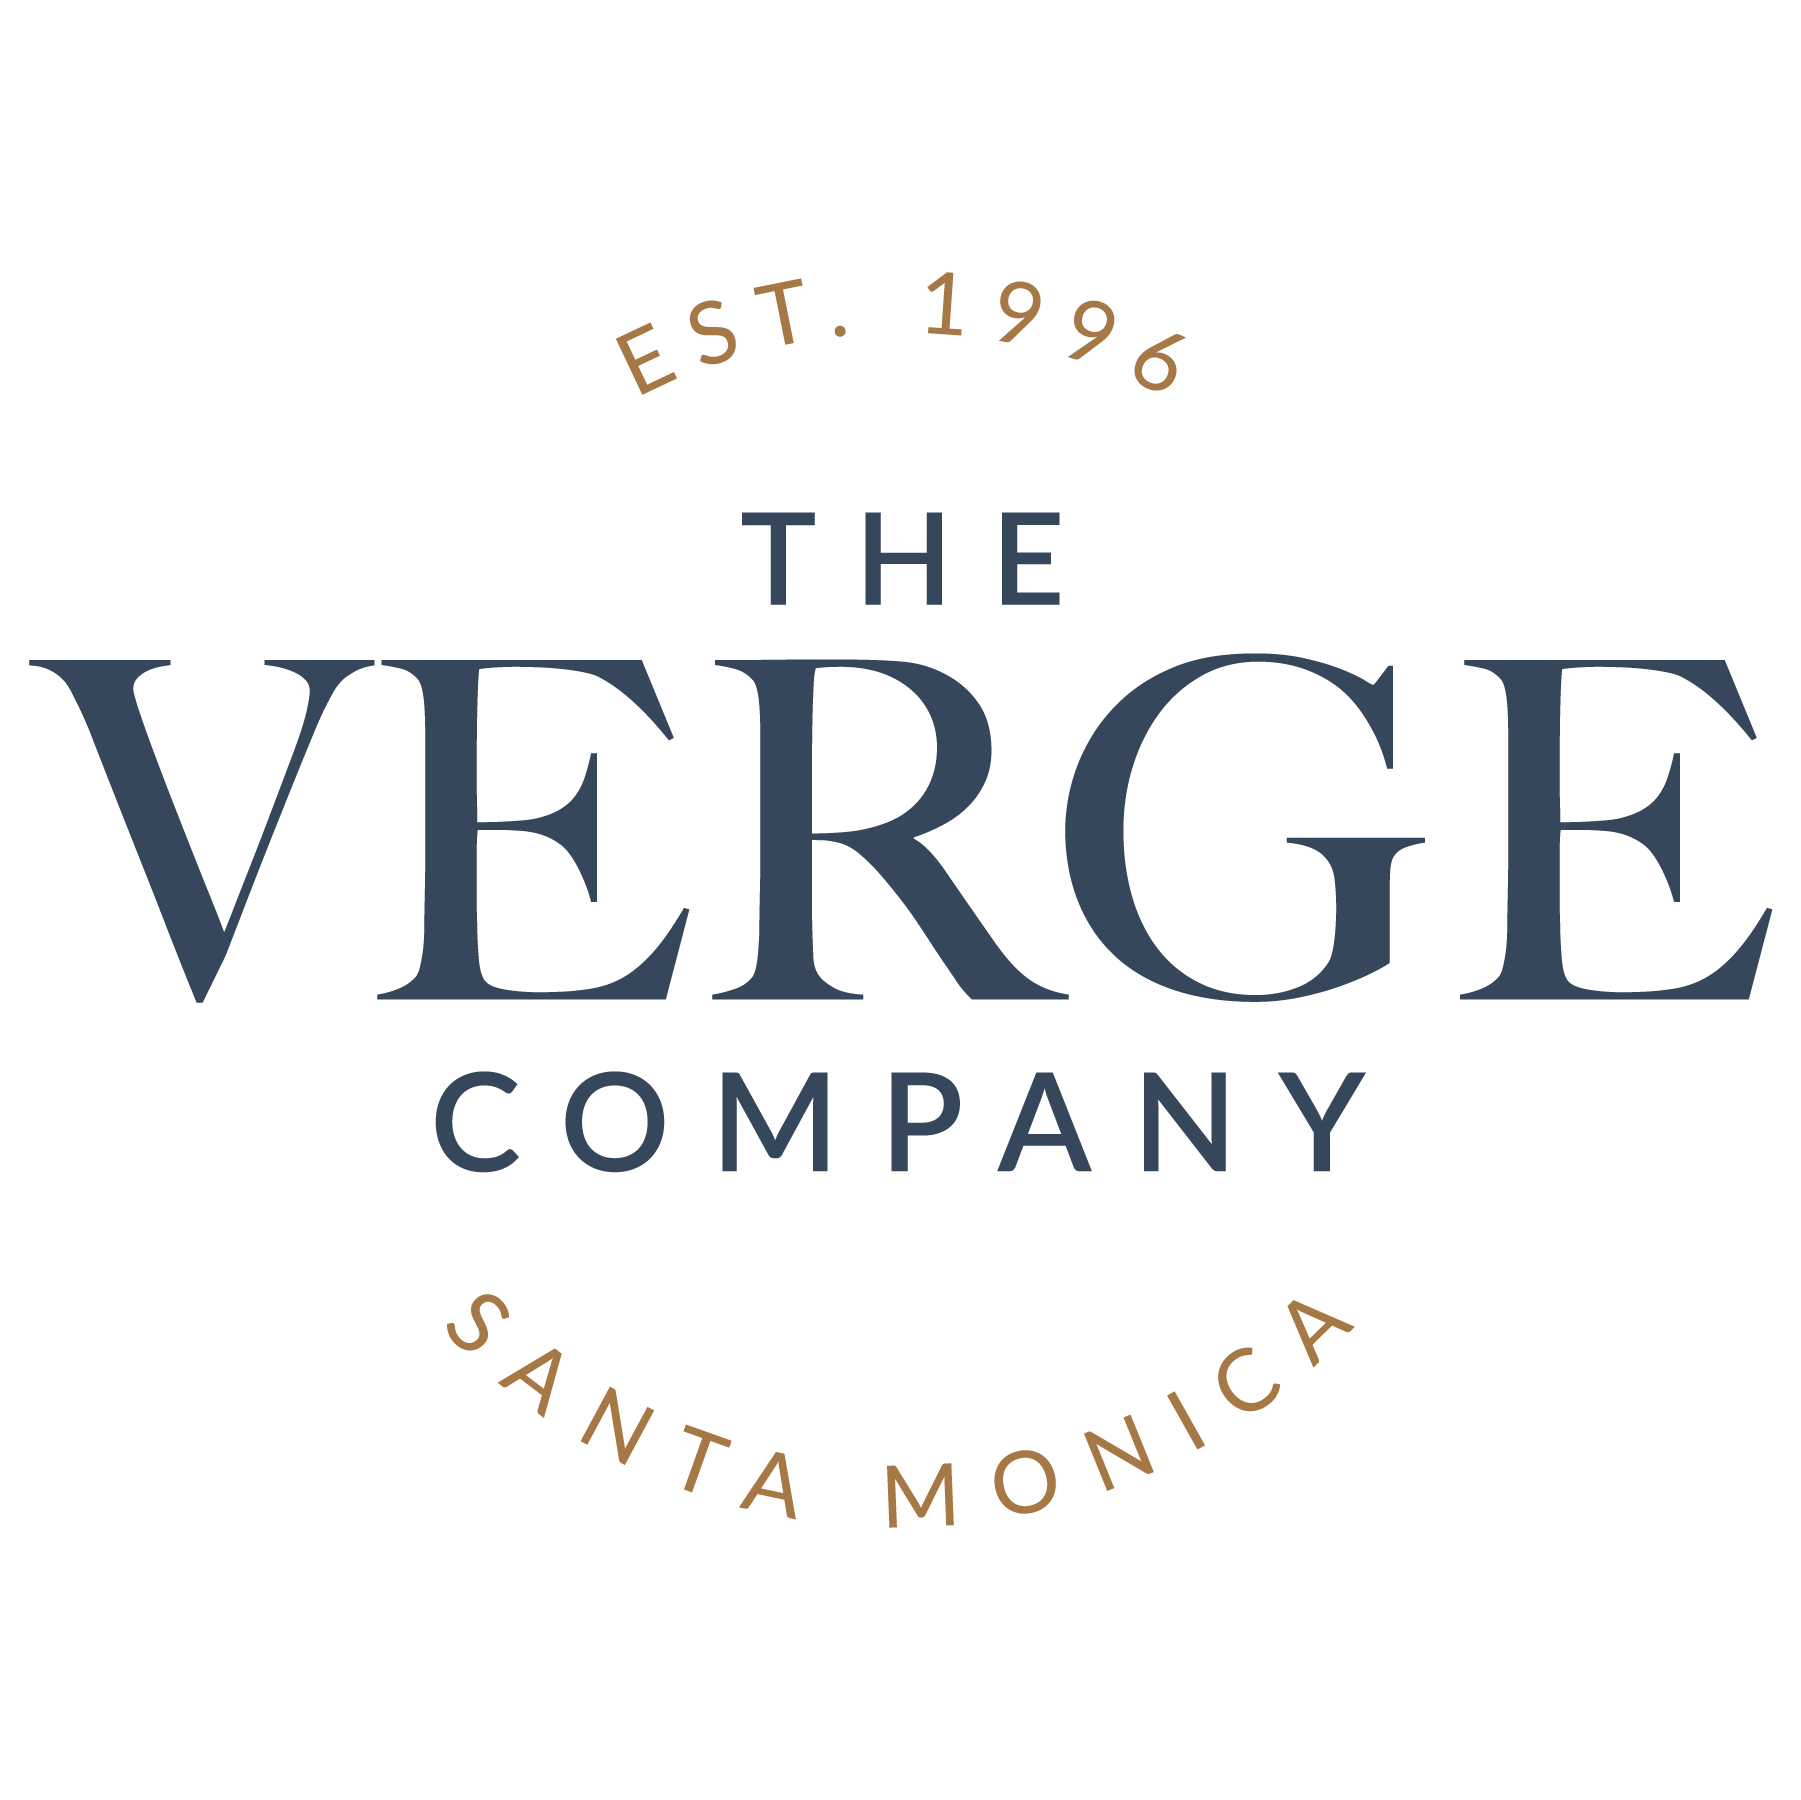 The Verge Company Logo